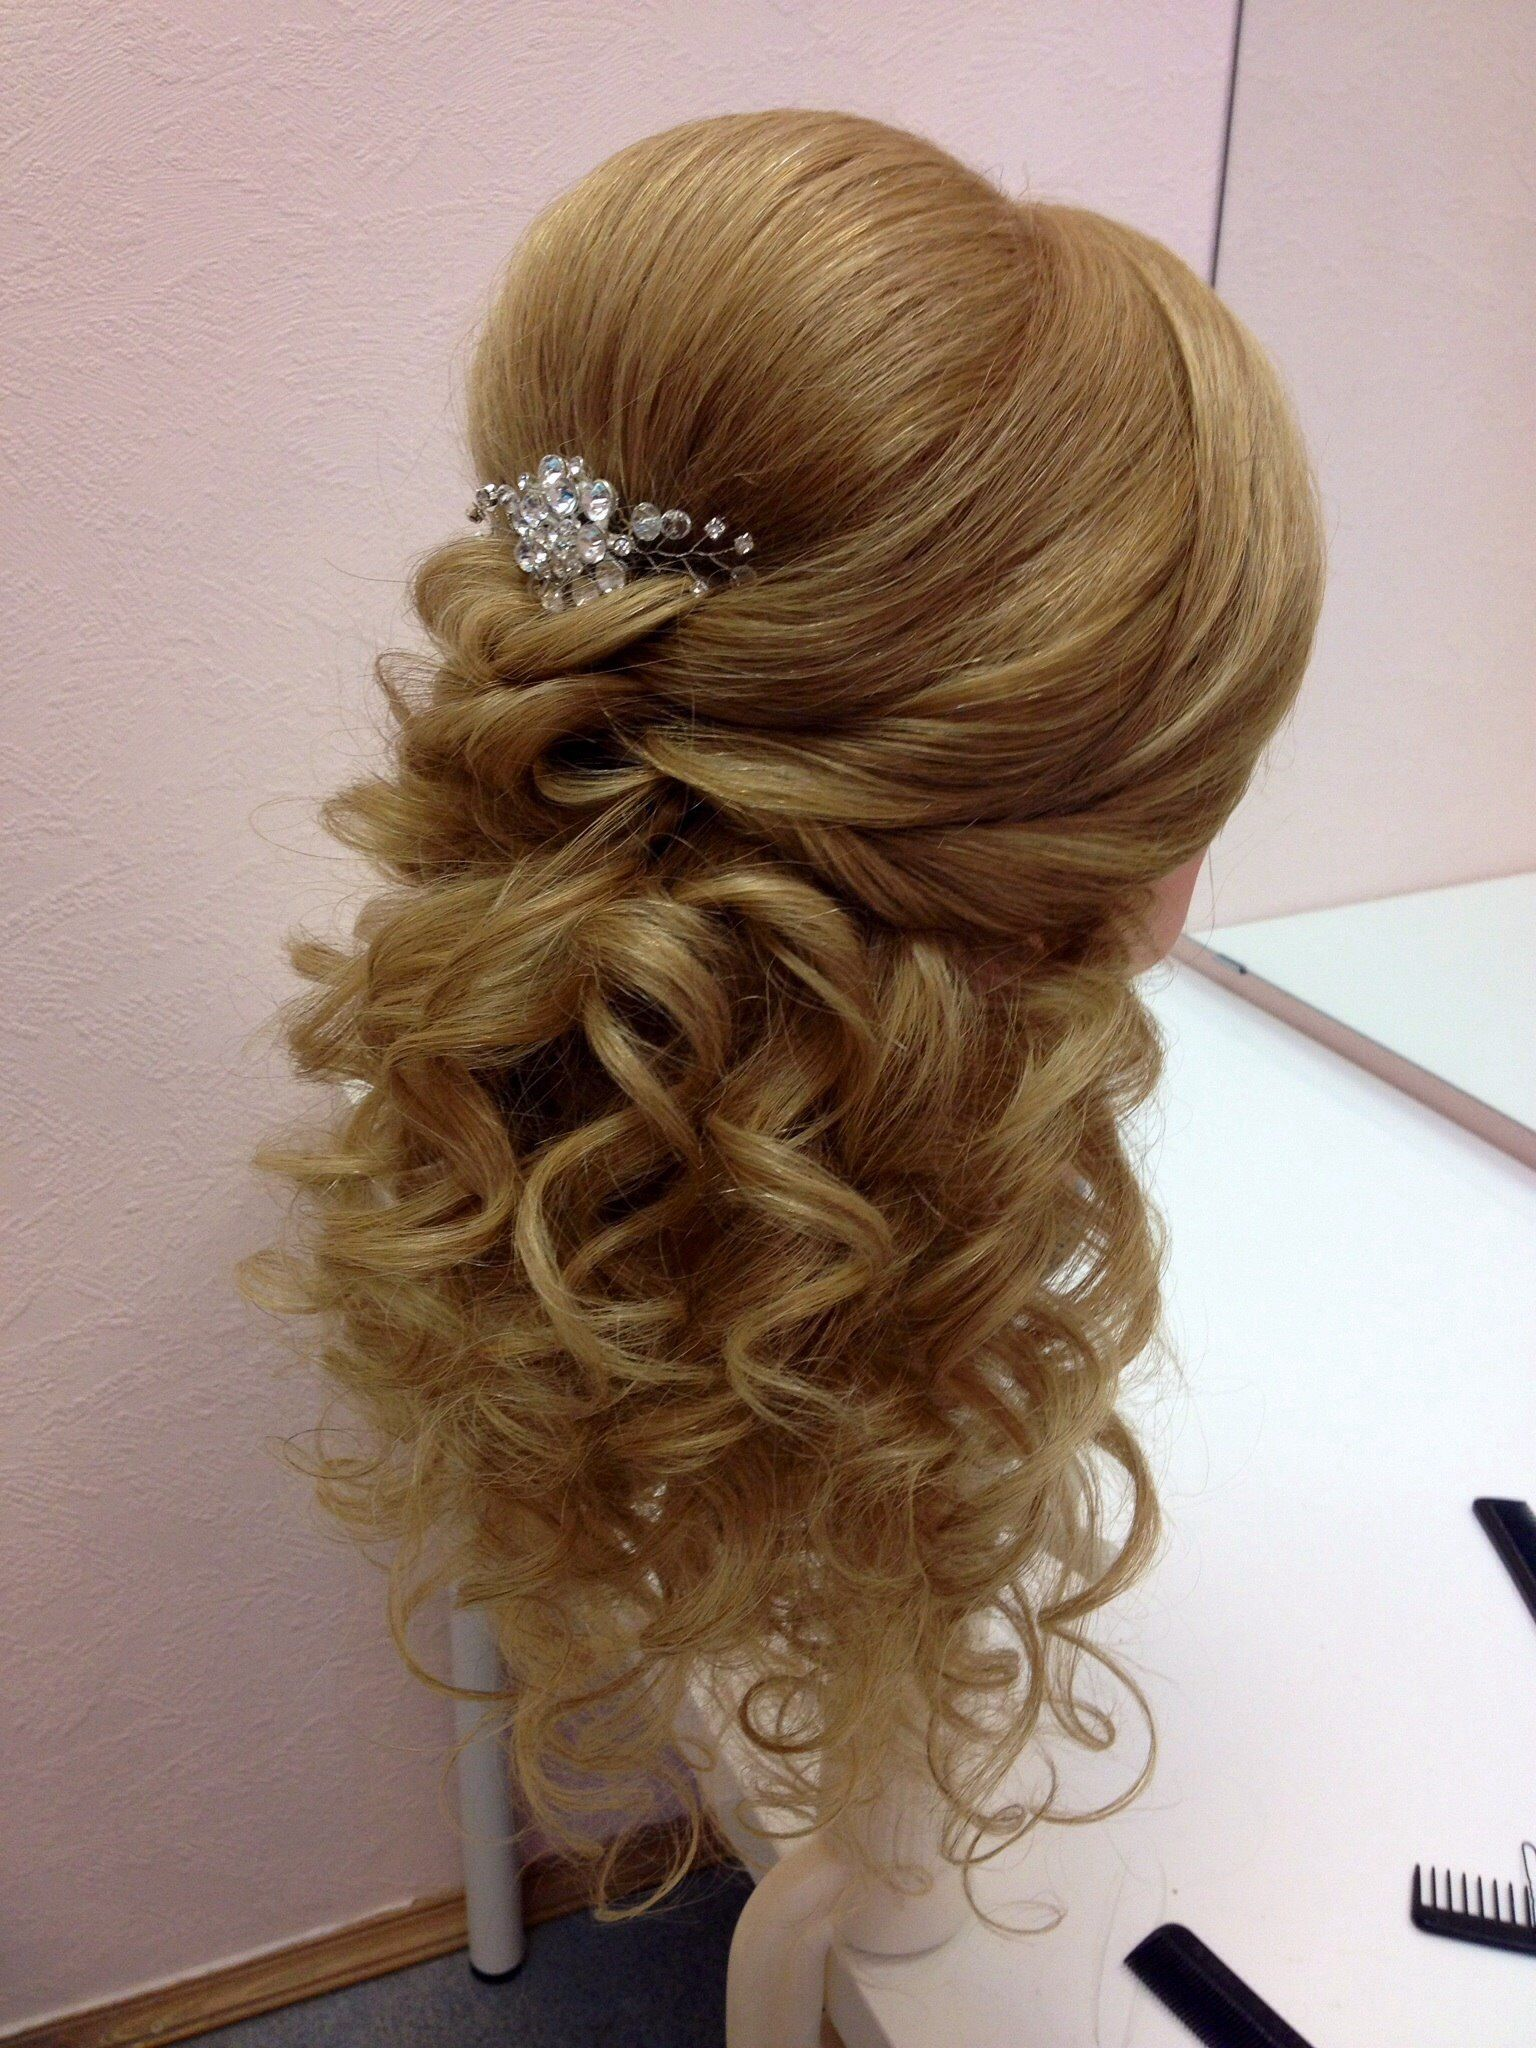 Bridal hair style wedding things pinterest cabello peinados